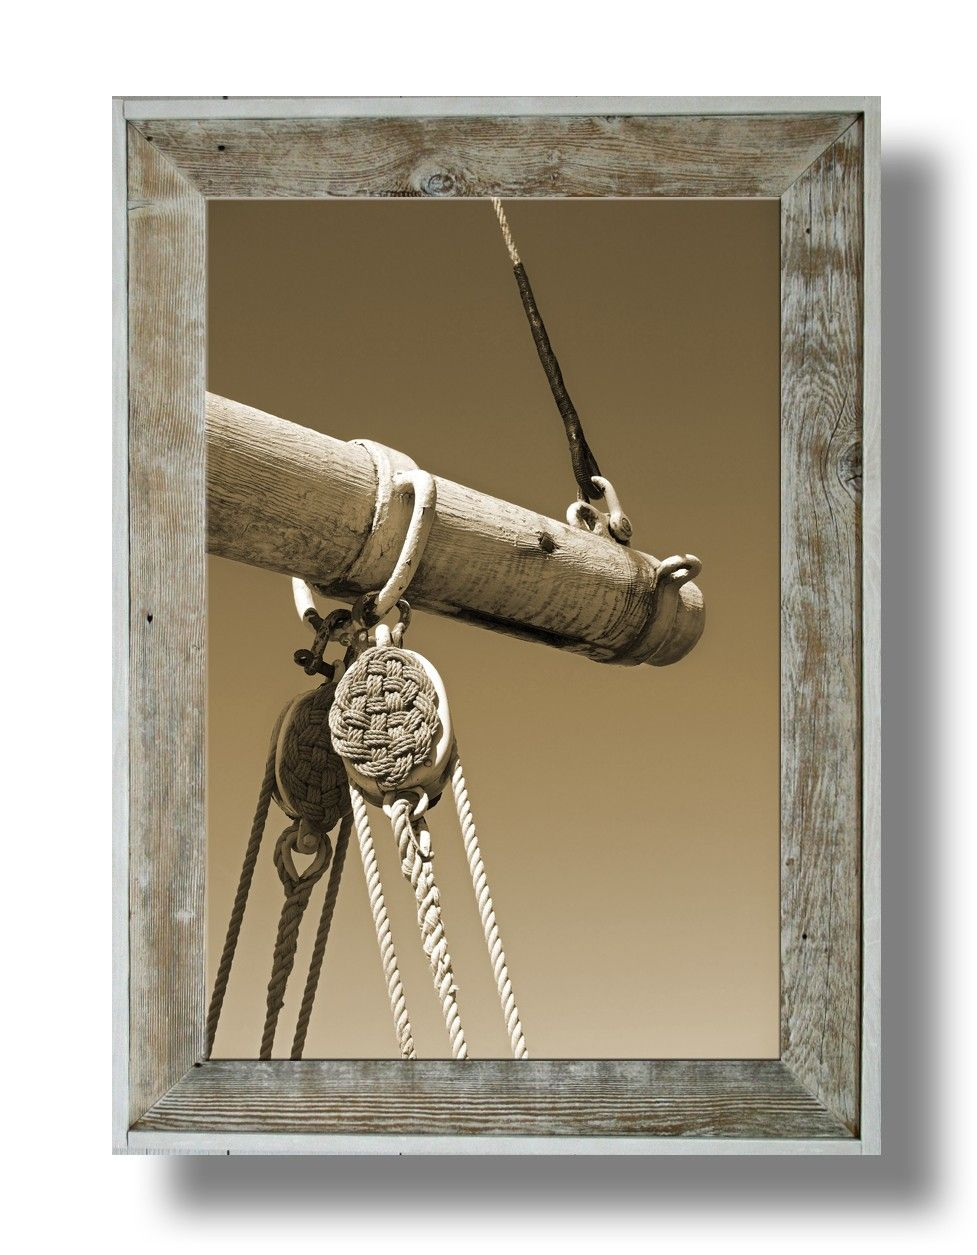 Antique Mast Artwork 33 32 X 24 Canvas Print In A 43 X 31 White Washed Frame Cl43w 33 Picture Frames Unique Items Products Antiques